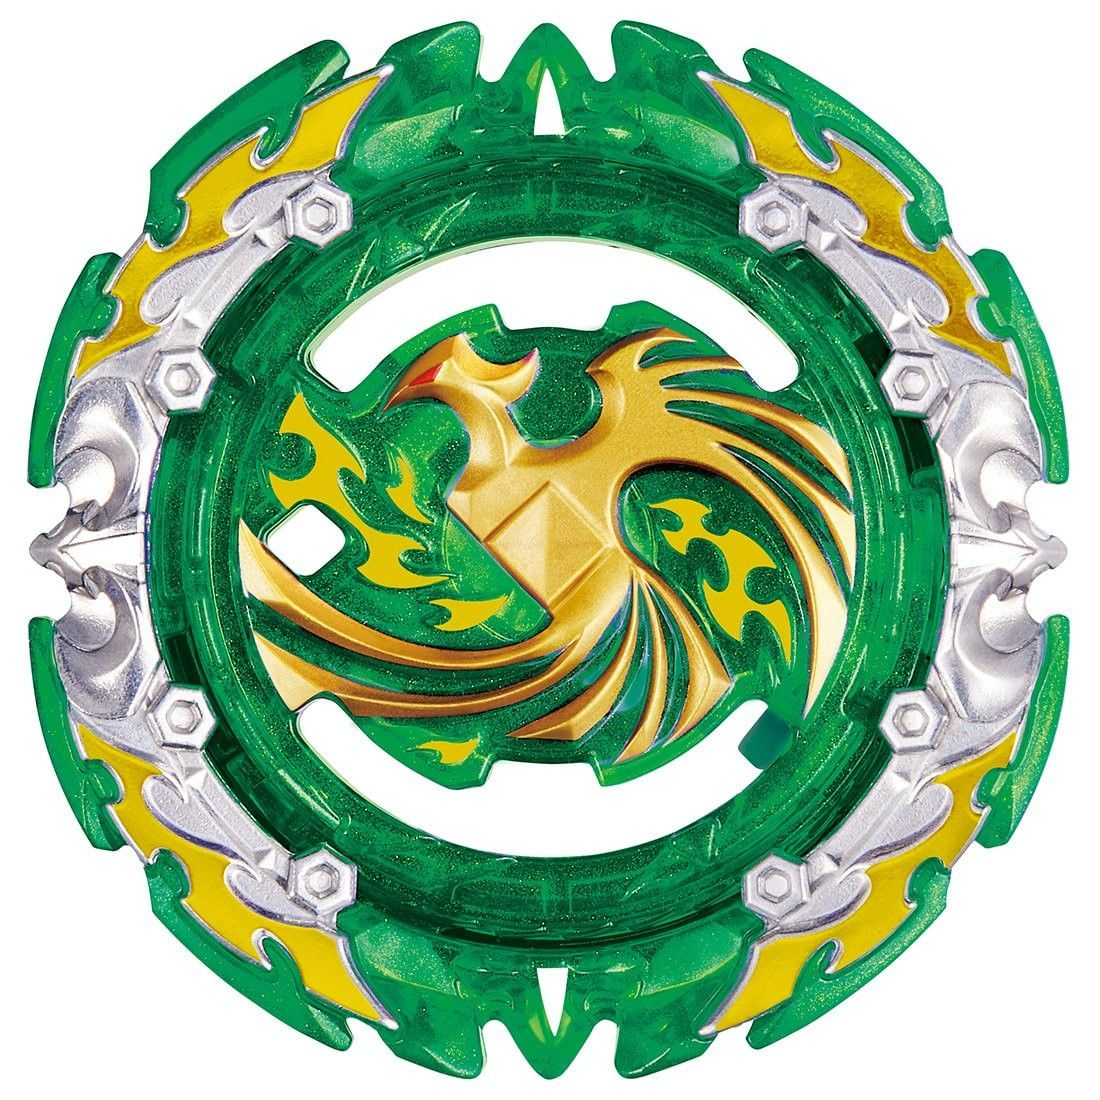 A Recolor Of The Layer Of Dead Phoenix That Is Included In The B 143 Random Layer Collection Vol 1 Beyblade Burst Kids Toy Gifts Takara Tomy